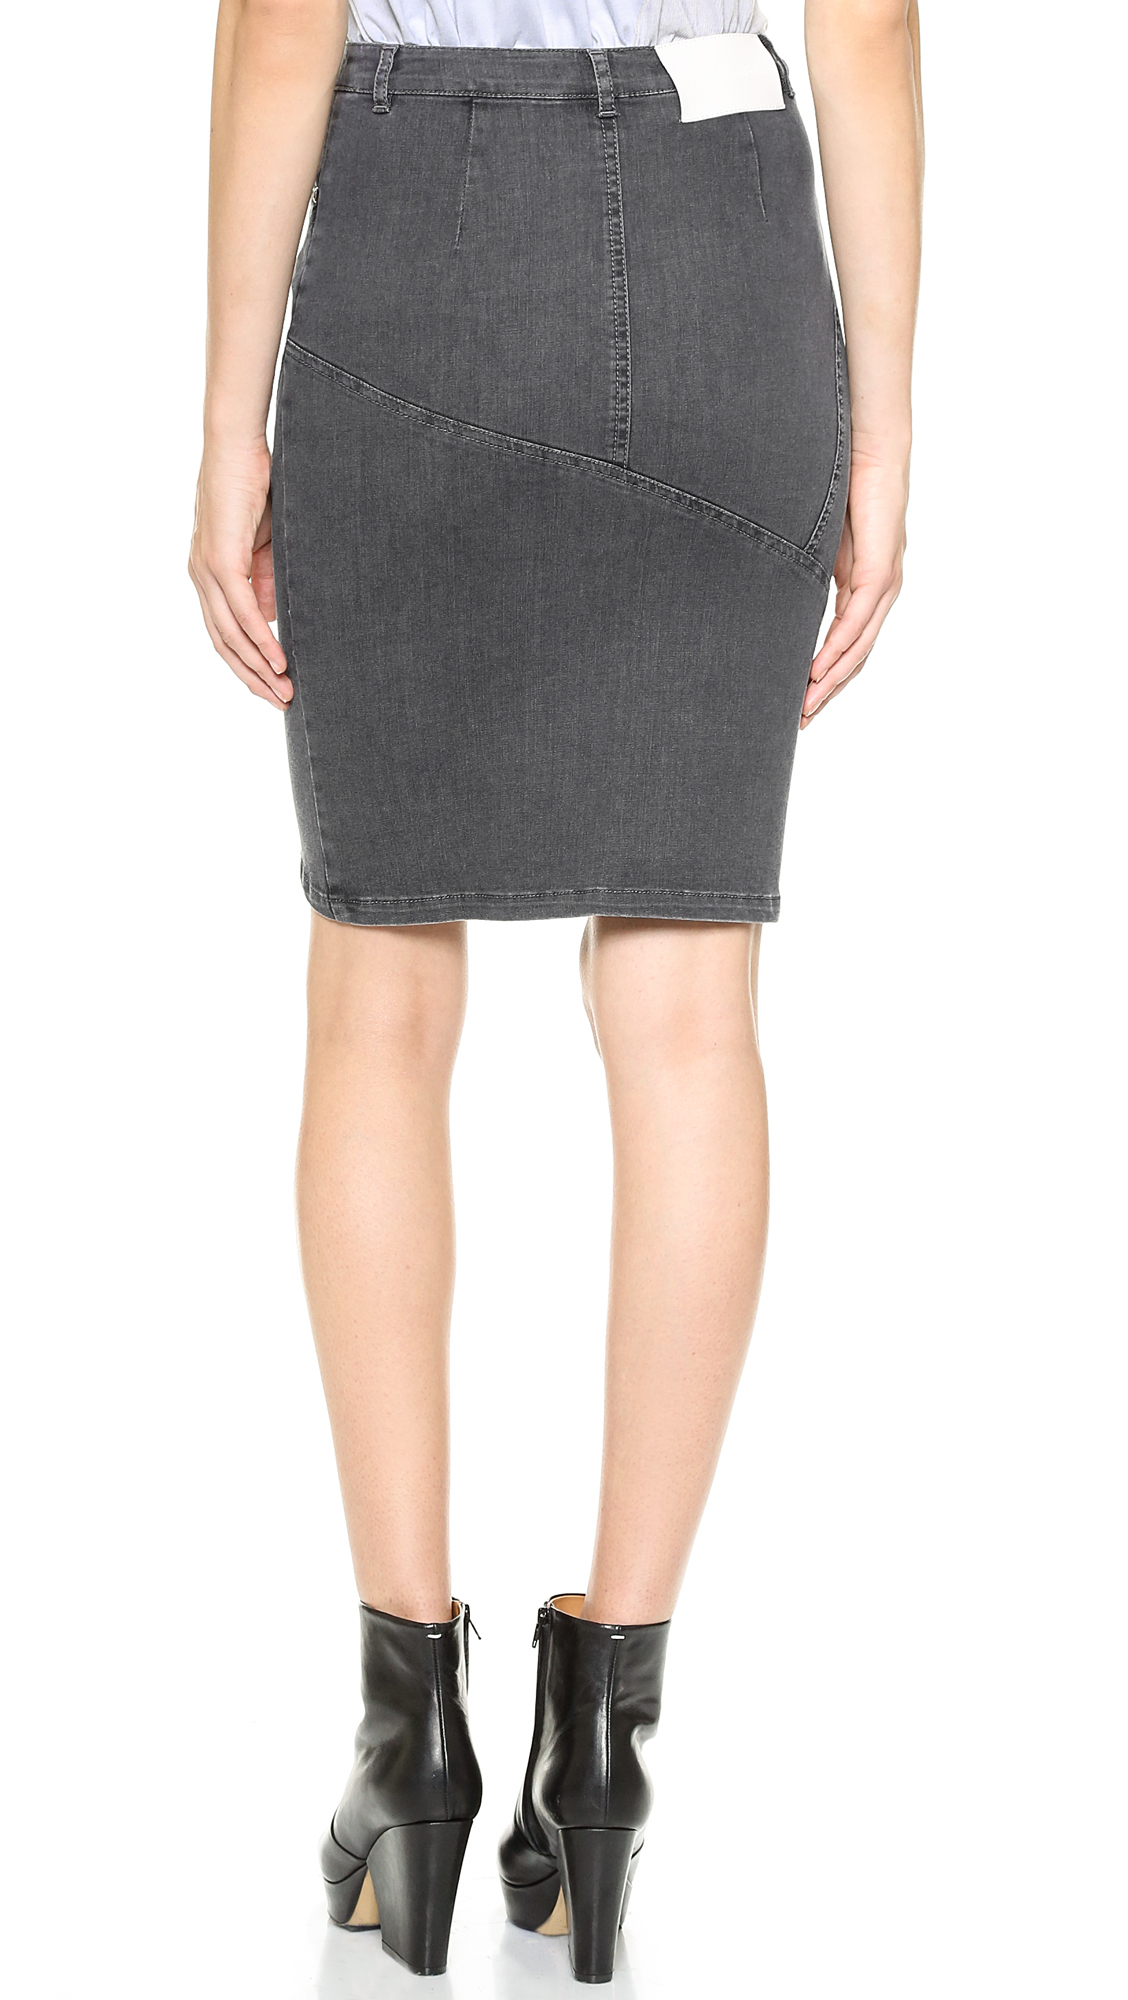 Tess giberson Pieced Denim Skirt - Grey Denim in Gray | Lyst